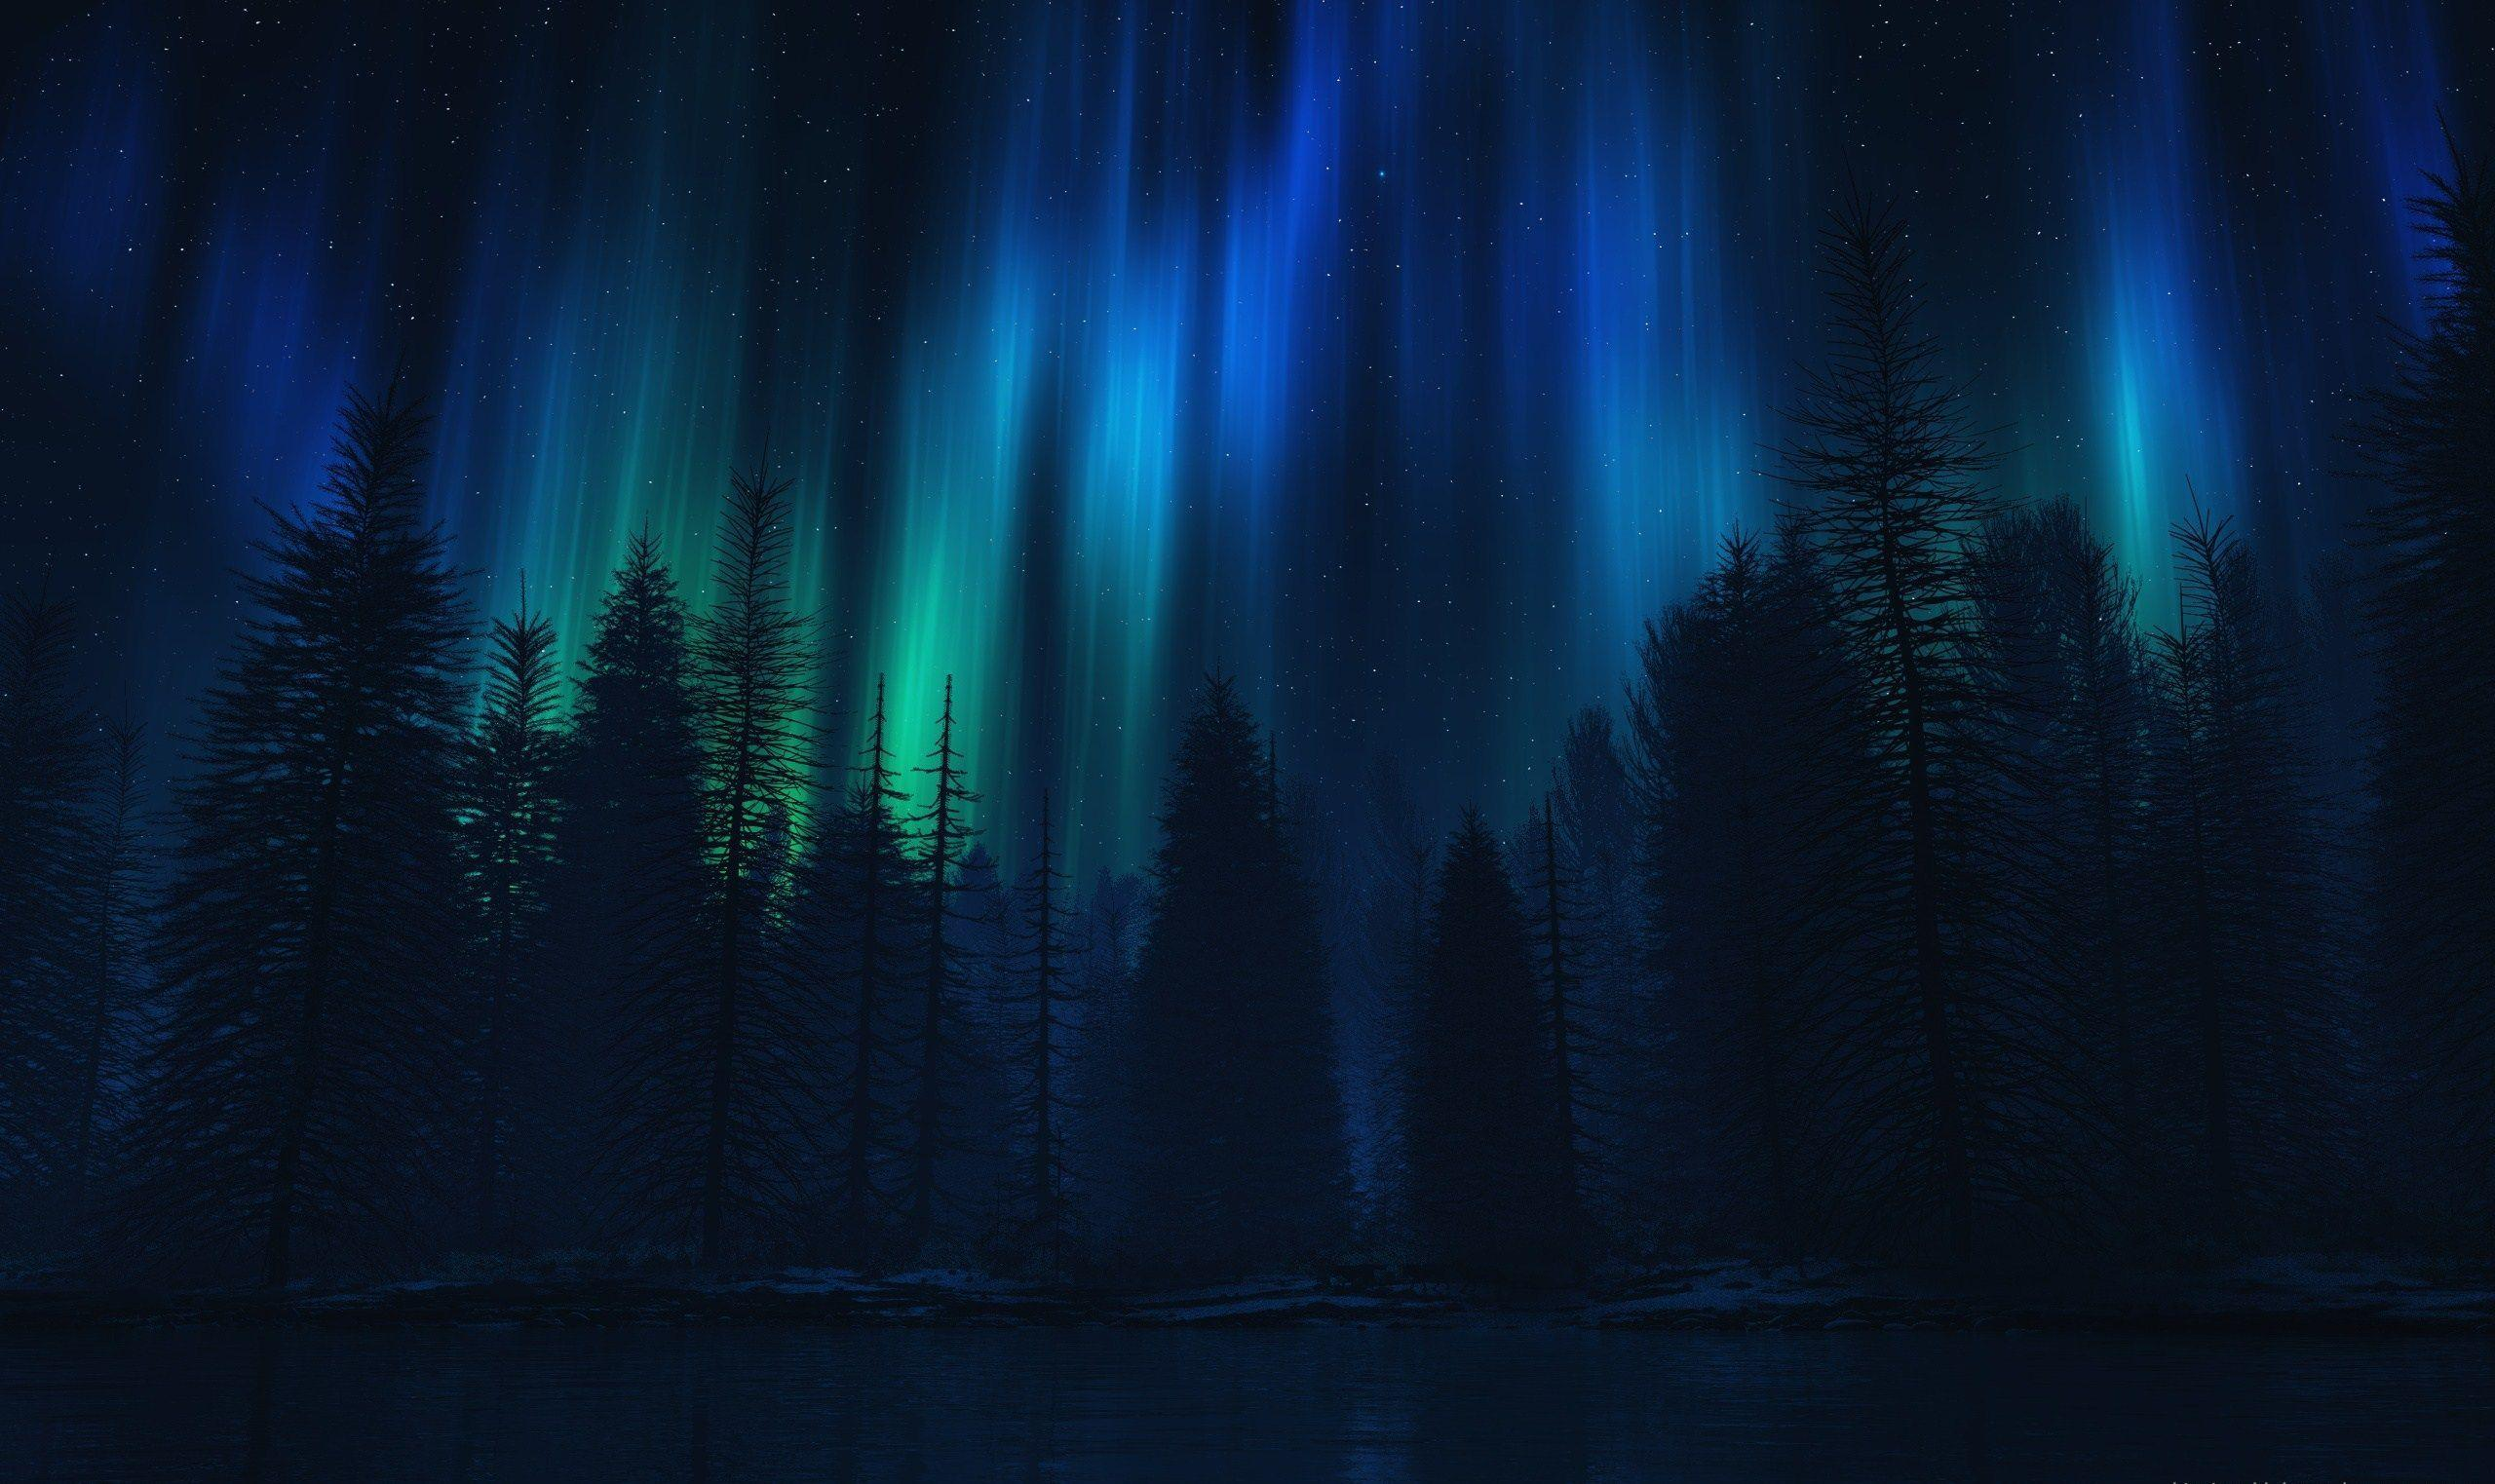 widescreen wallpapers x aurora borealis - photo #9